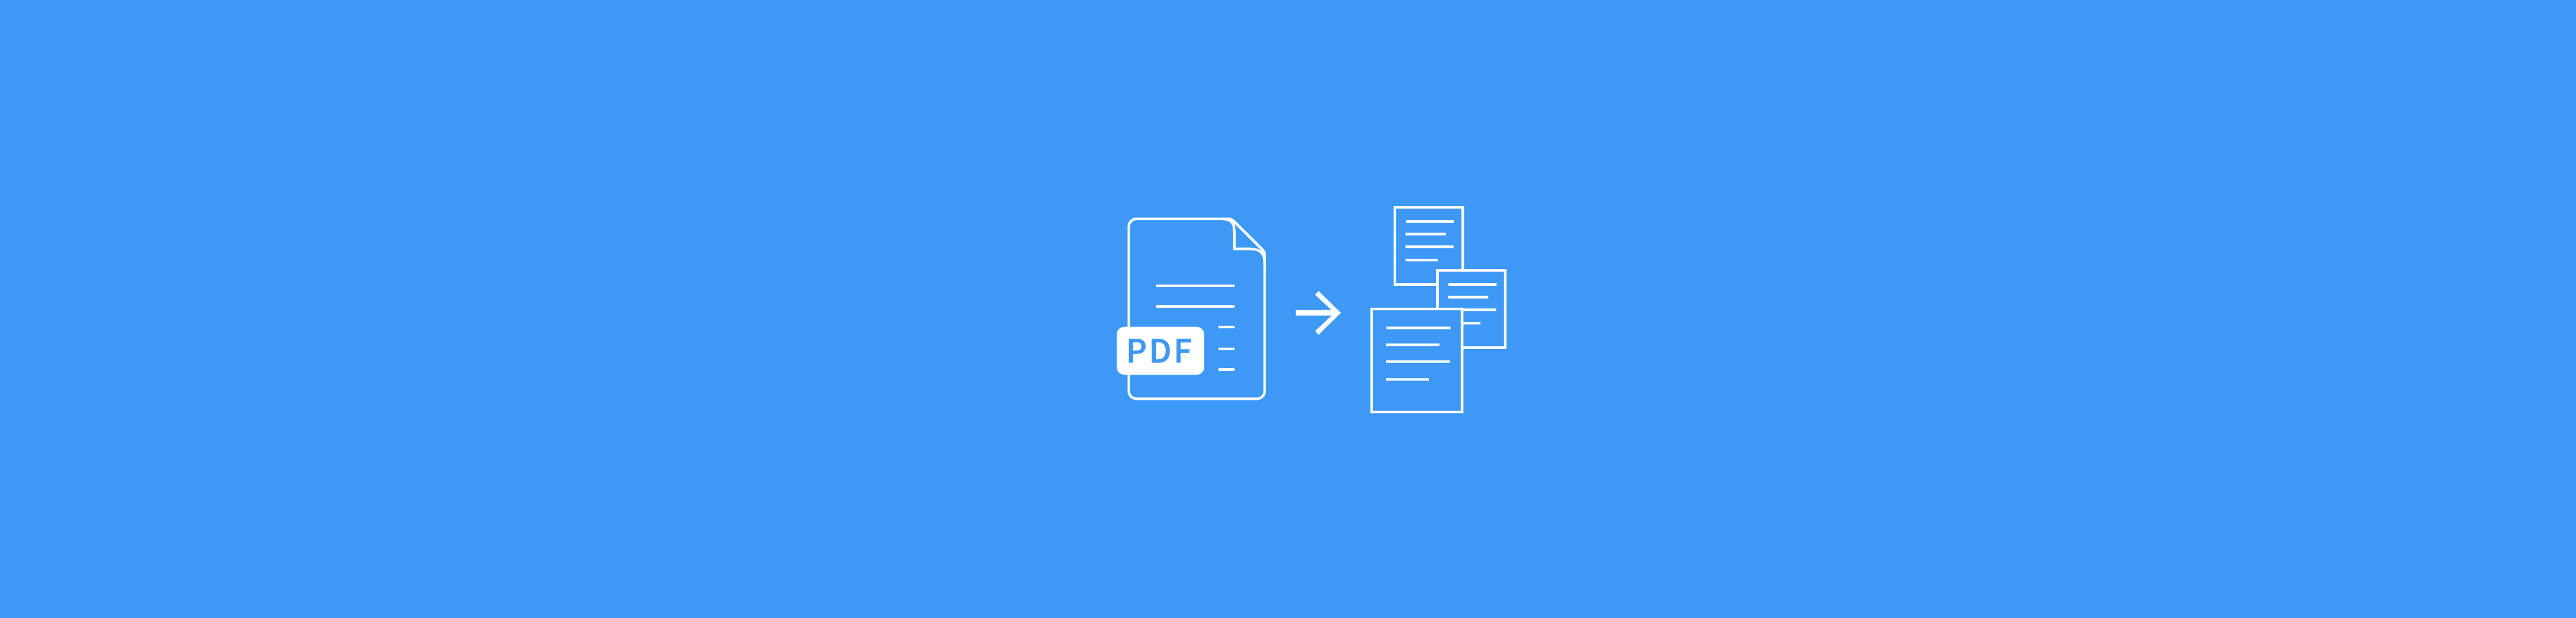 How to Insert PDF into Word